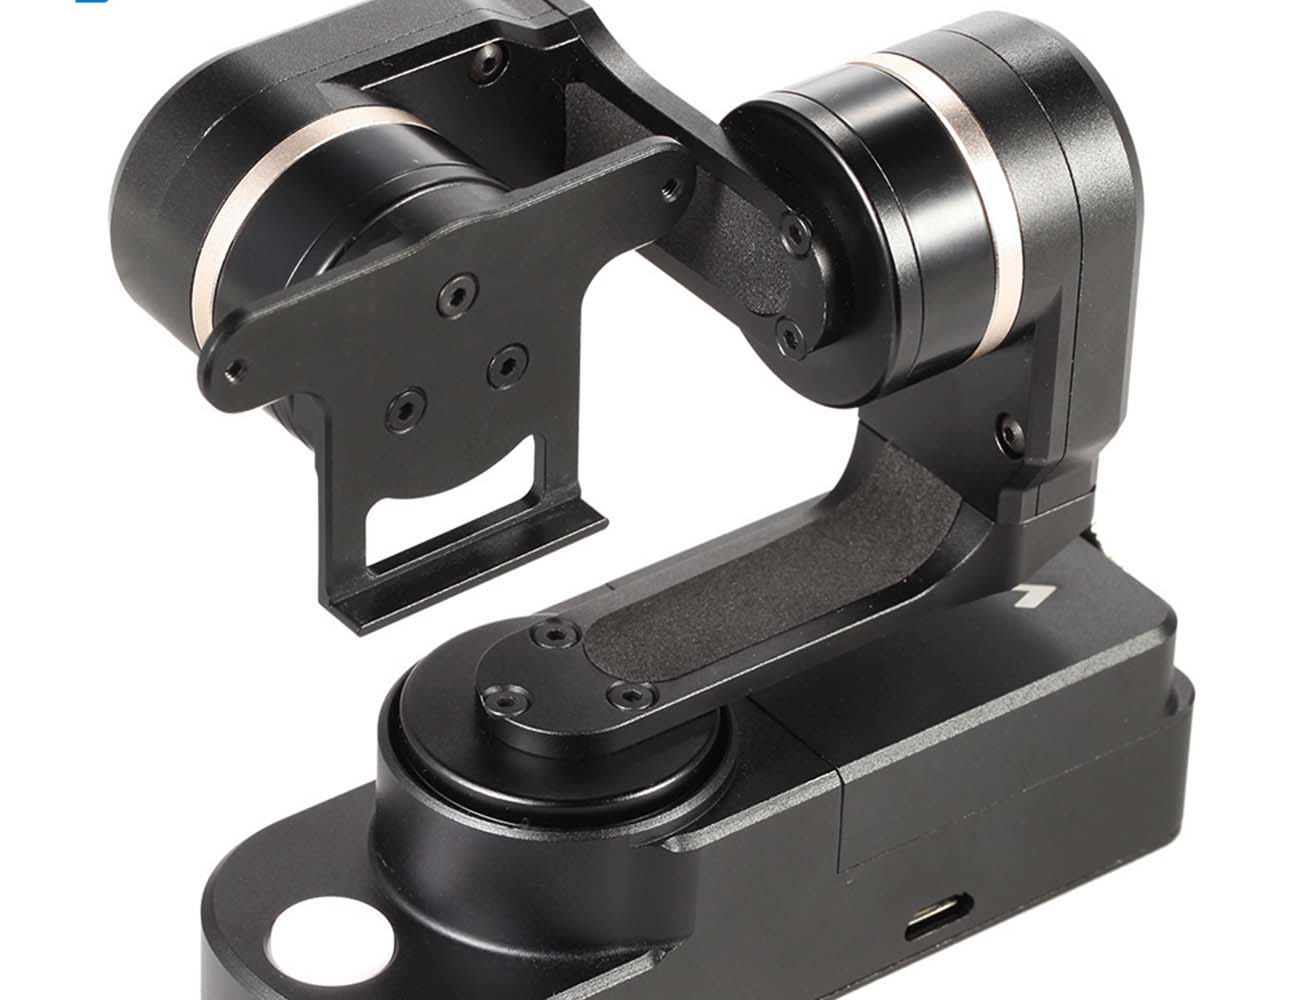 FY-WG – A Wearable Action Camera Gimbal by Feiyu Tech